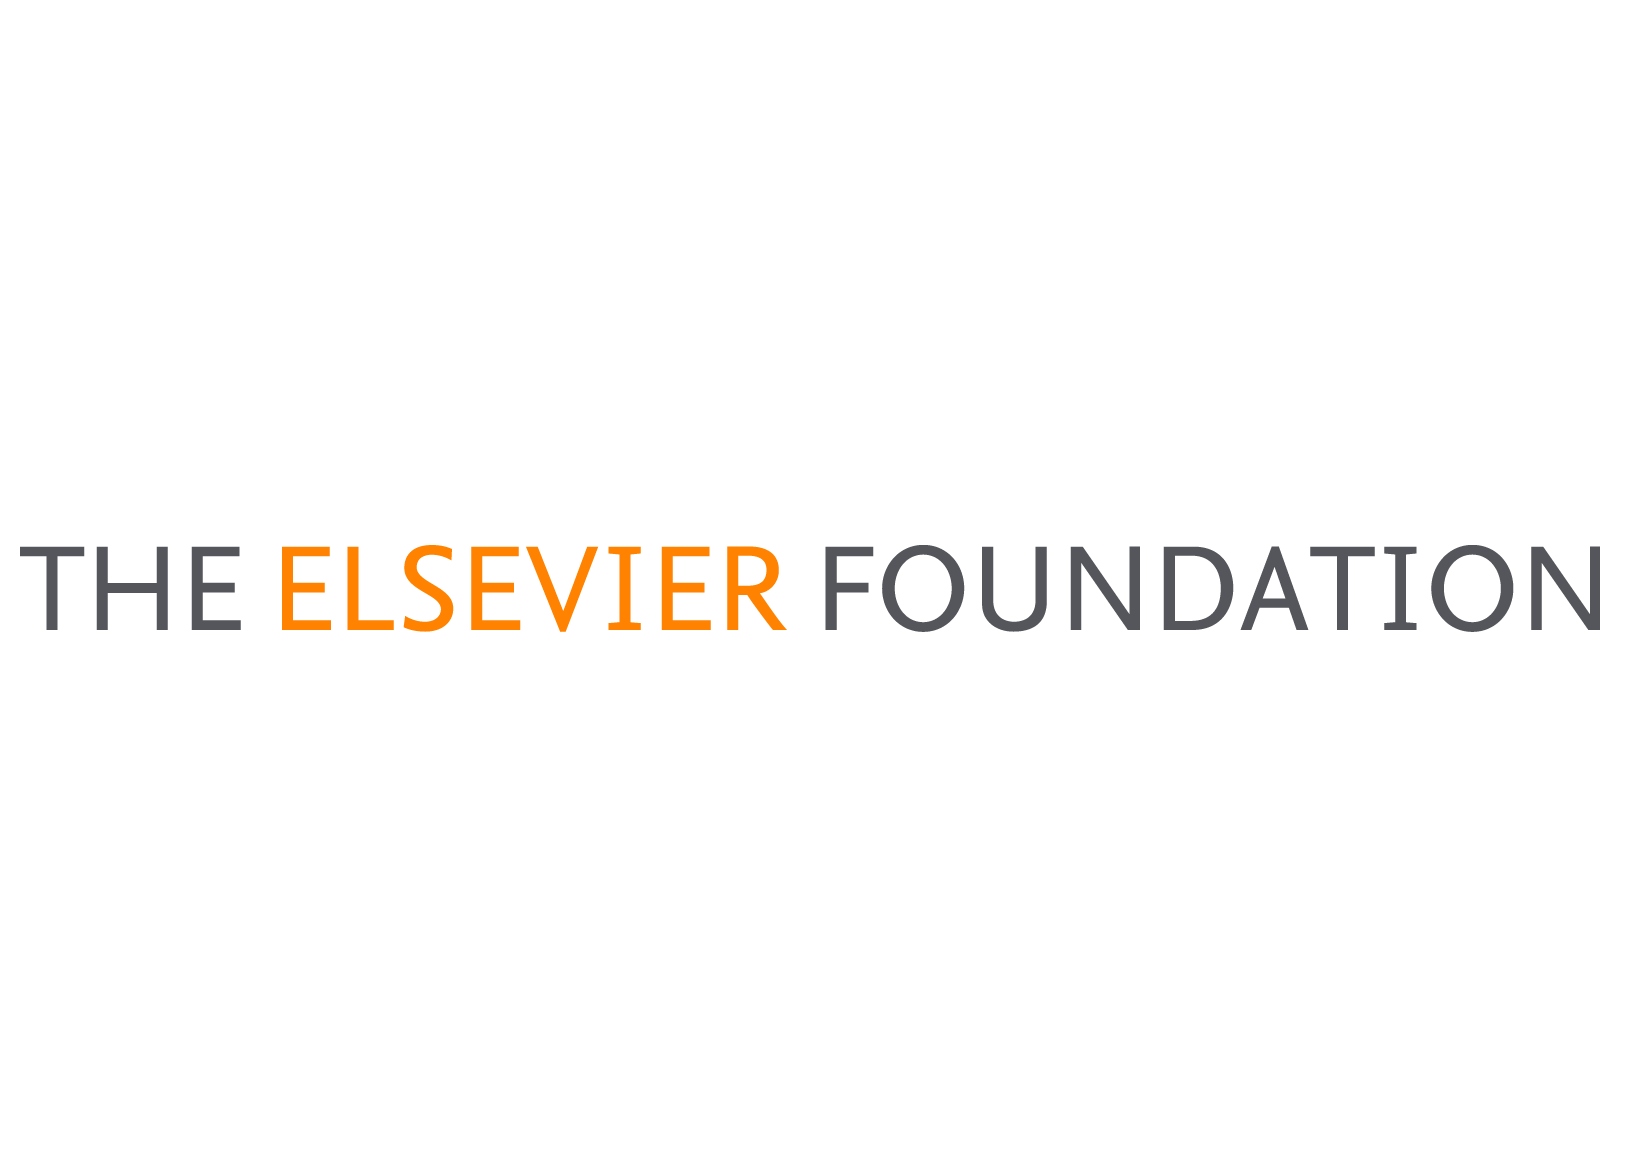 The Elsevier Foundation